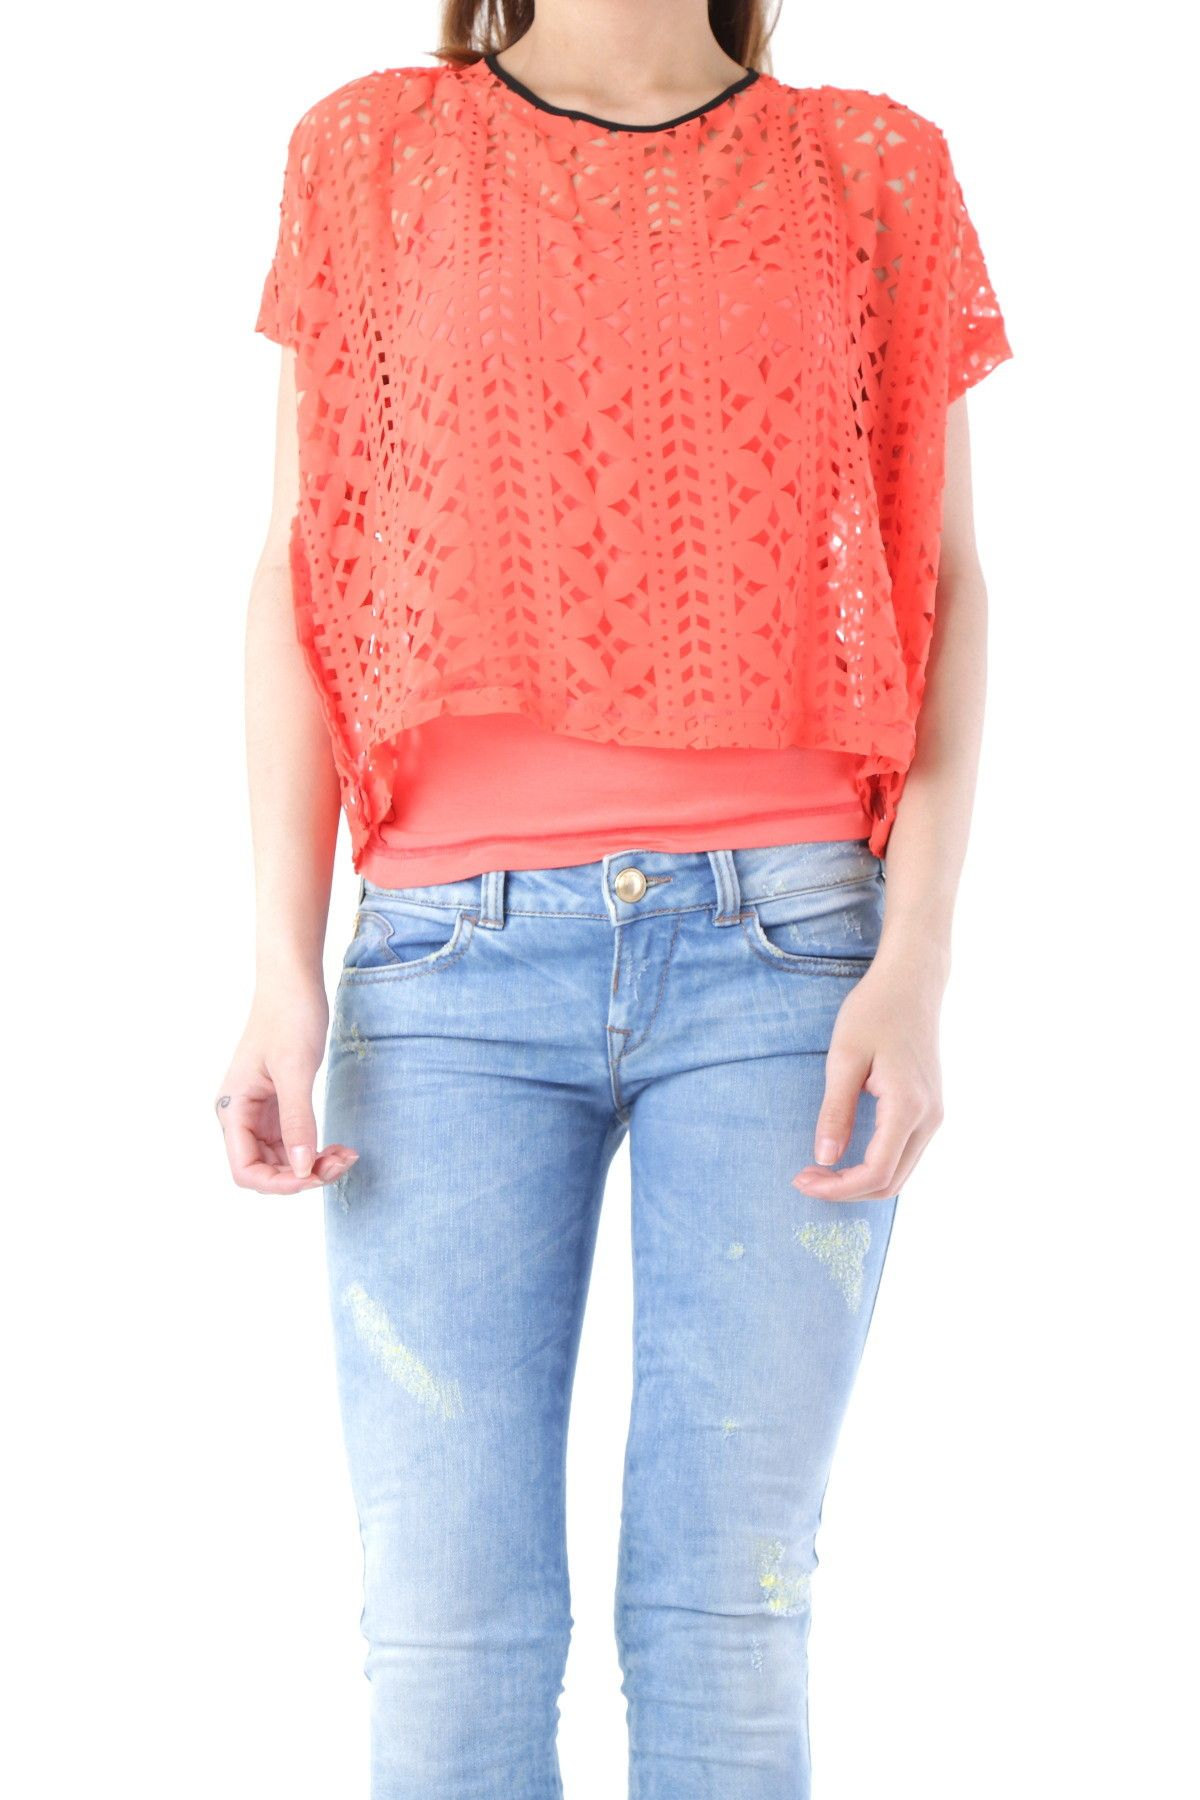 Fornarina Women's Blouse In Orange